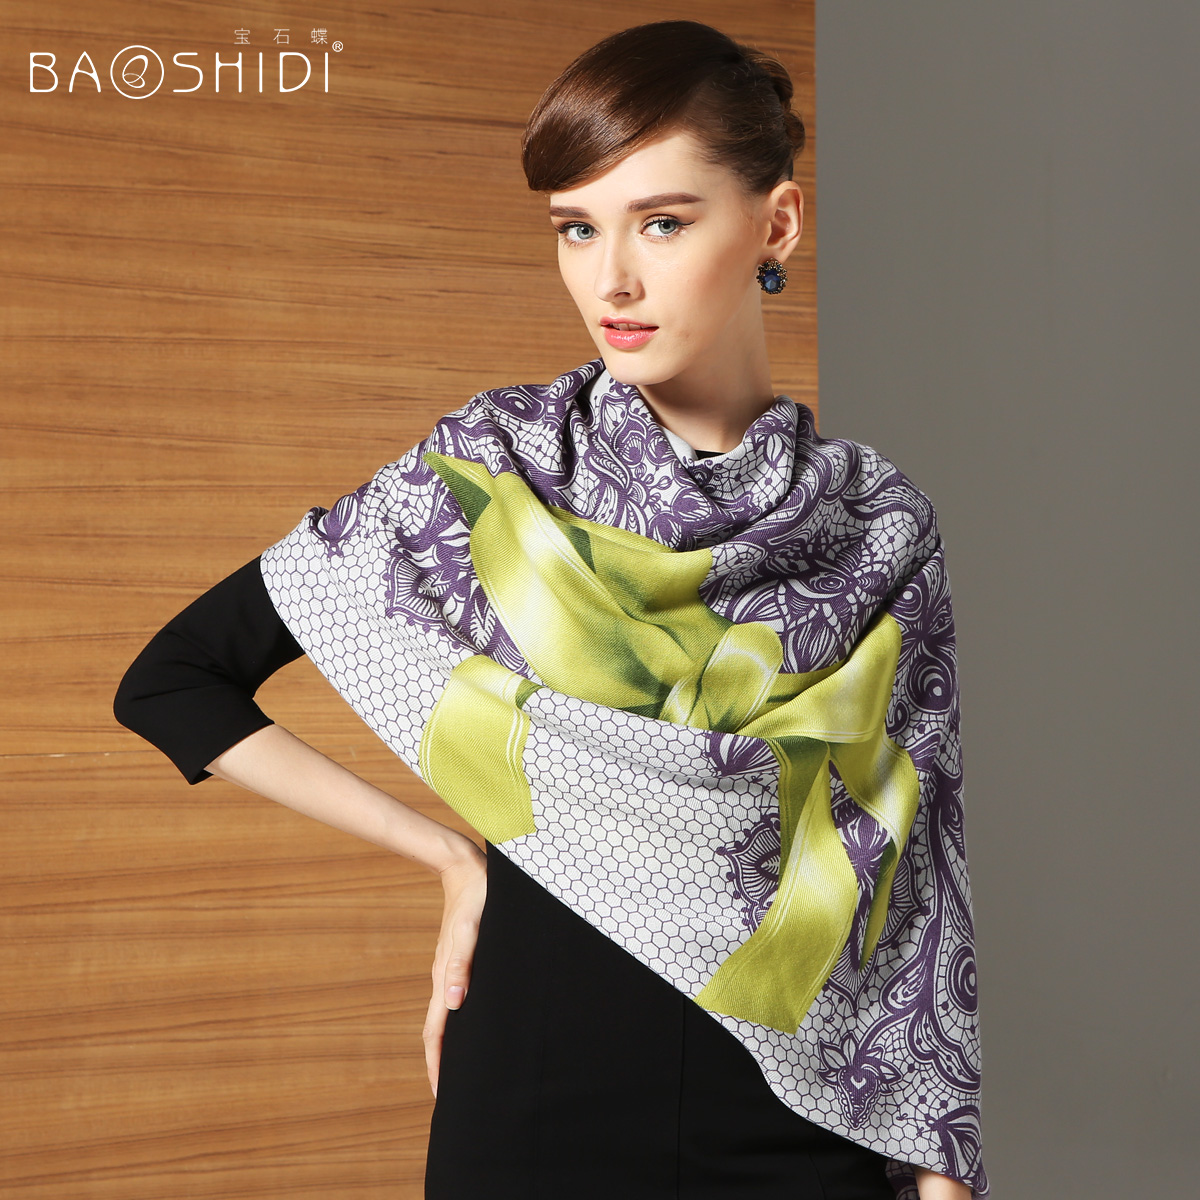 Paris fashion 100% Wool scarves female spring and autumn dual shawl scarves perfect gift birthday(China (Mainland))